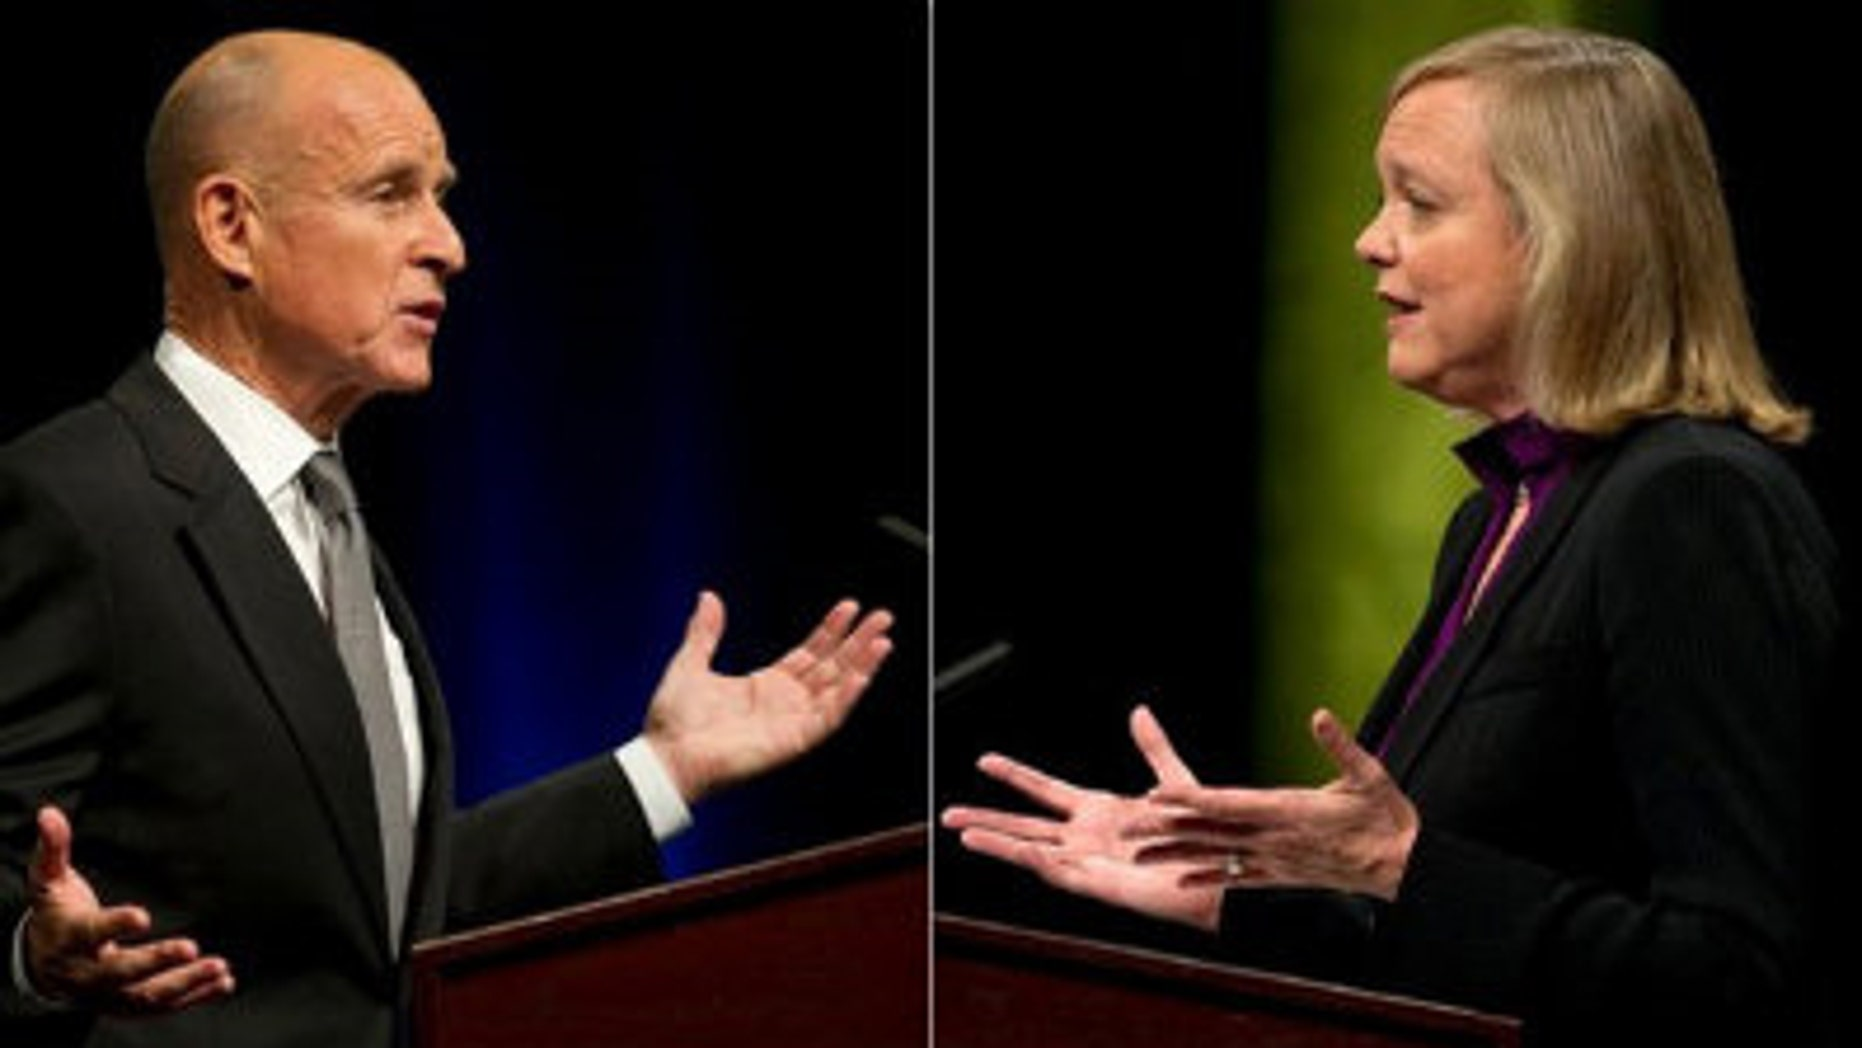 FILE: Democratic gubernatorial candidate Jerry Brown debates Republican Meg Whitman at the University of California at Davis on Sept. 28, 2010.